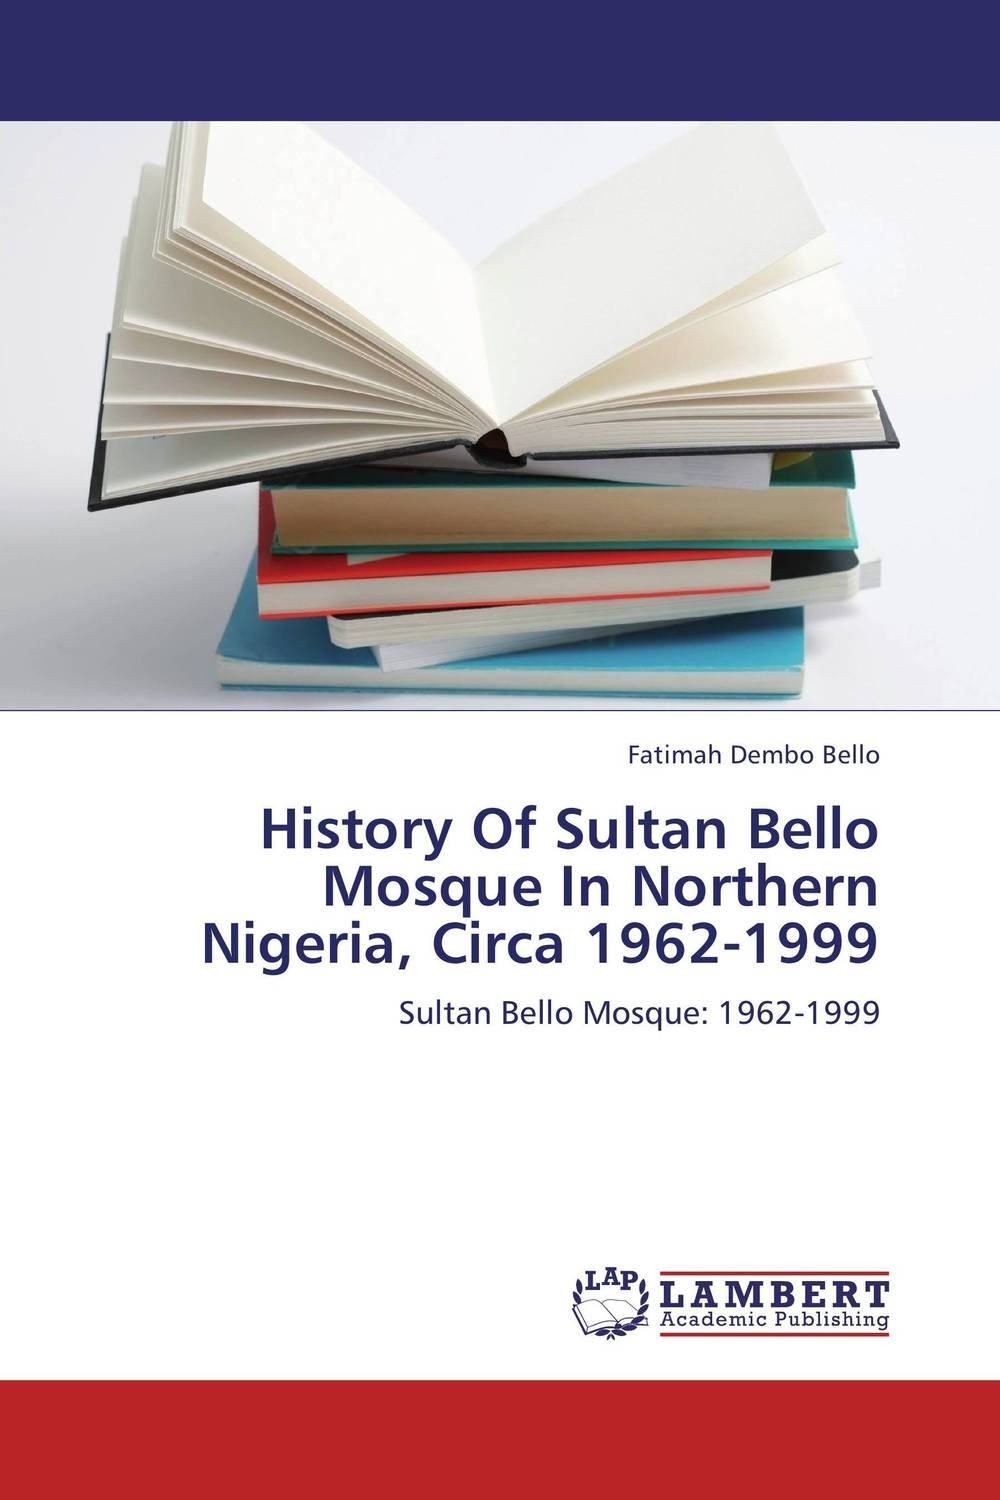 купить  History Of Sultan Bello Mosque In Northern Nigeria, Circa 1962-1999  онлайн